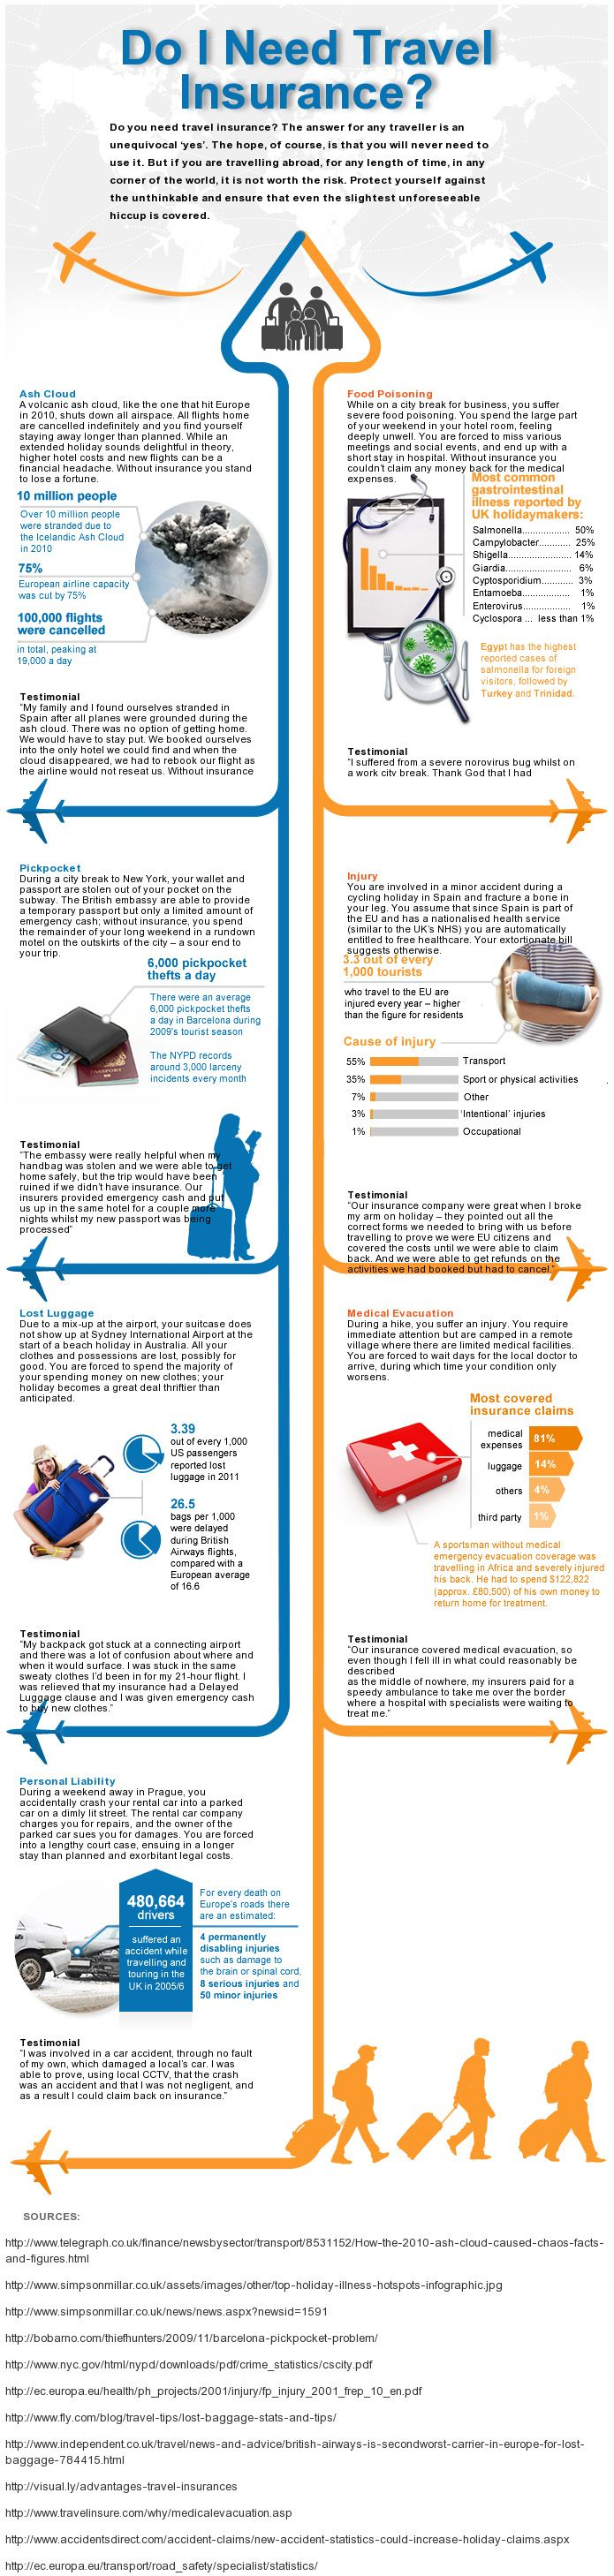 Why Get Travel Insurance  Infographics Mania  Travel. Funding For Creative Projects. Different Types Of Alcohol Texas Evening Mba. Gall Stone Pancreatitis Games Like Maplestory. Occupational Therapy Degrees Online. Free Web Store Software Cheap Web Hosting Php. English Language Academy Mold Testing Seattle. Td Ameritrade Trade Fee Chocolate Milk Health. Top Rated European Cruises Us Life Insurance